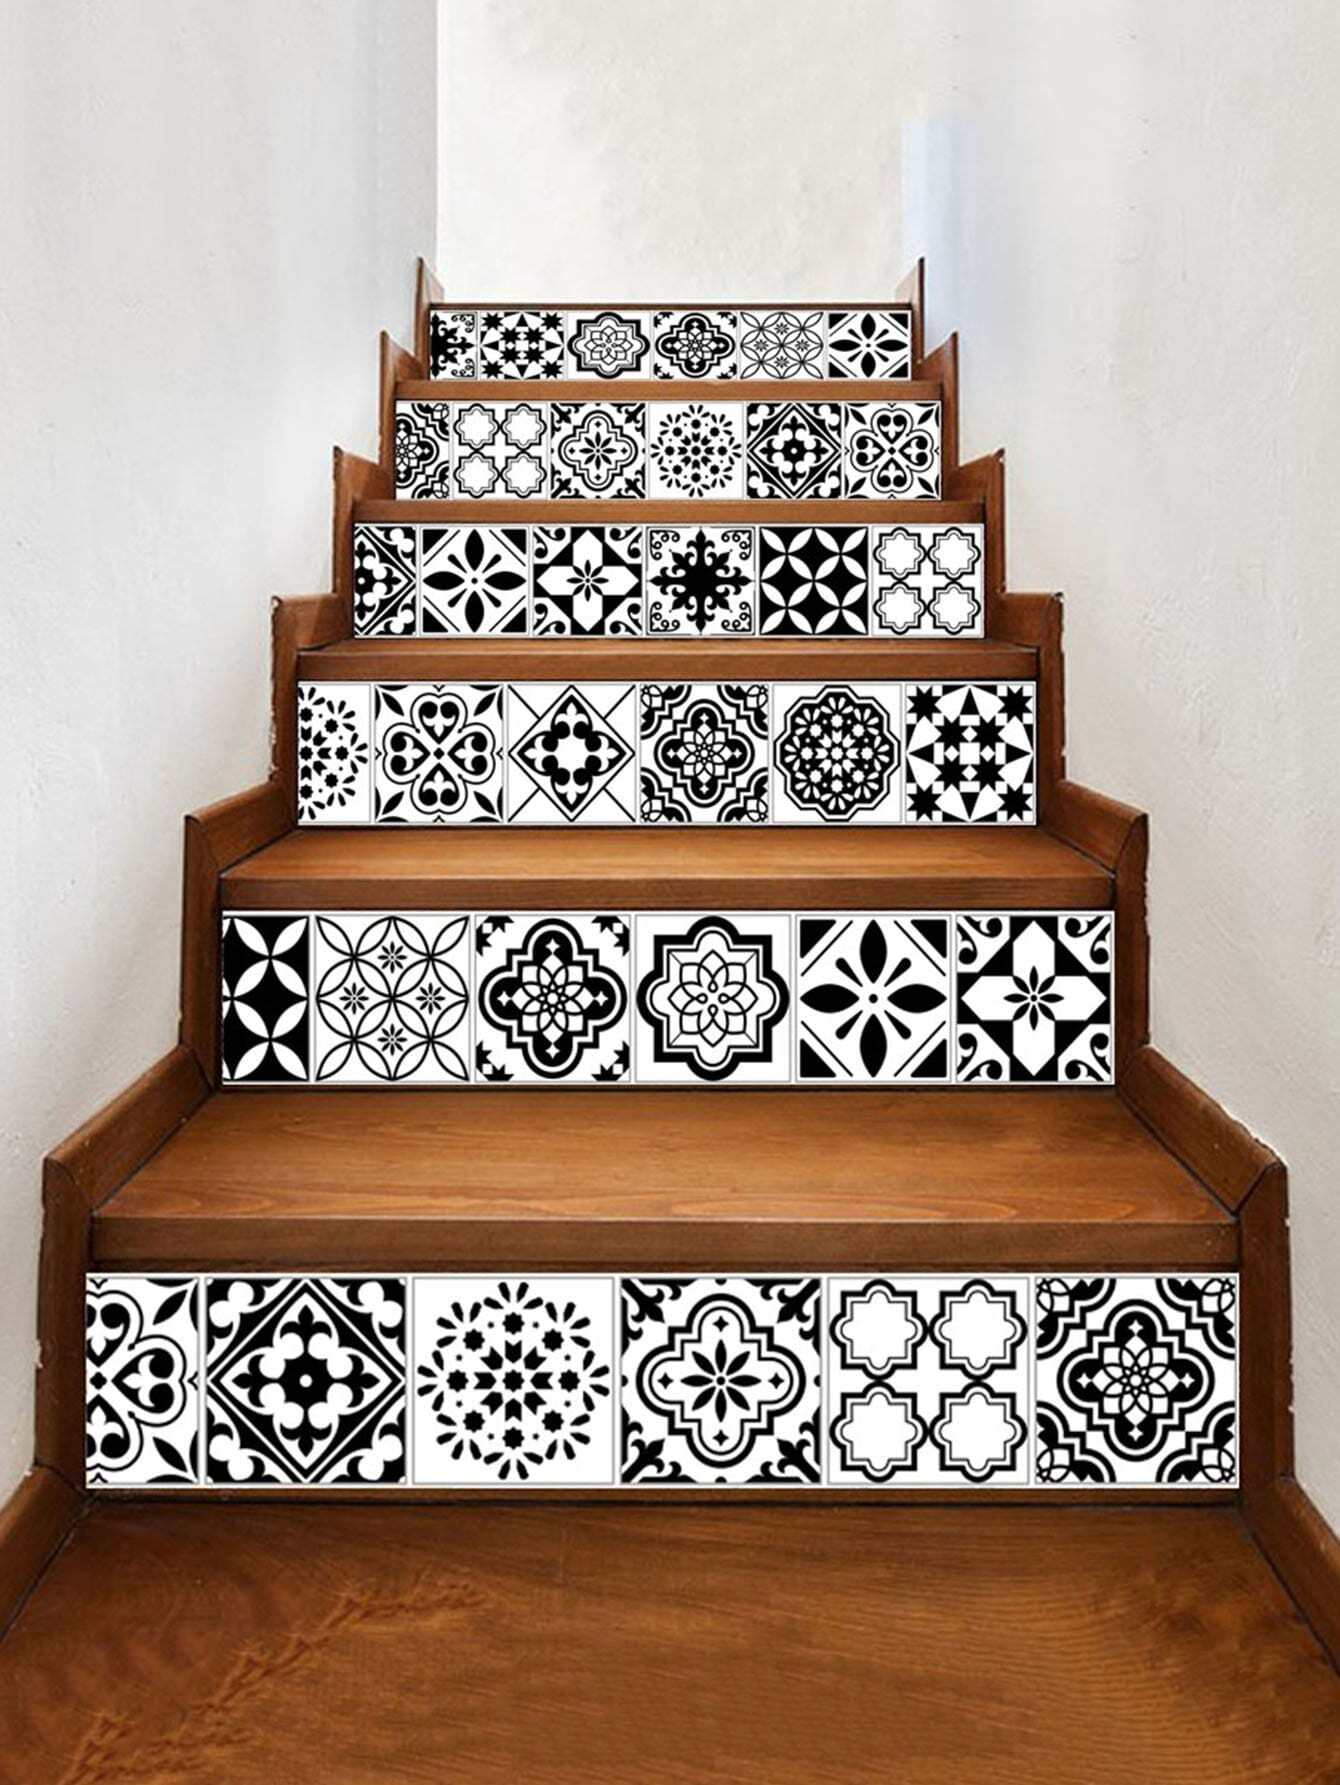 Symmetrical Pattern Stairs Tile sticker 6pcs sea wave stairs sticker 6pcs